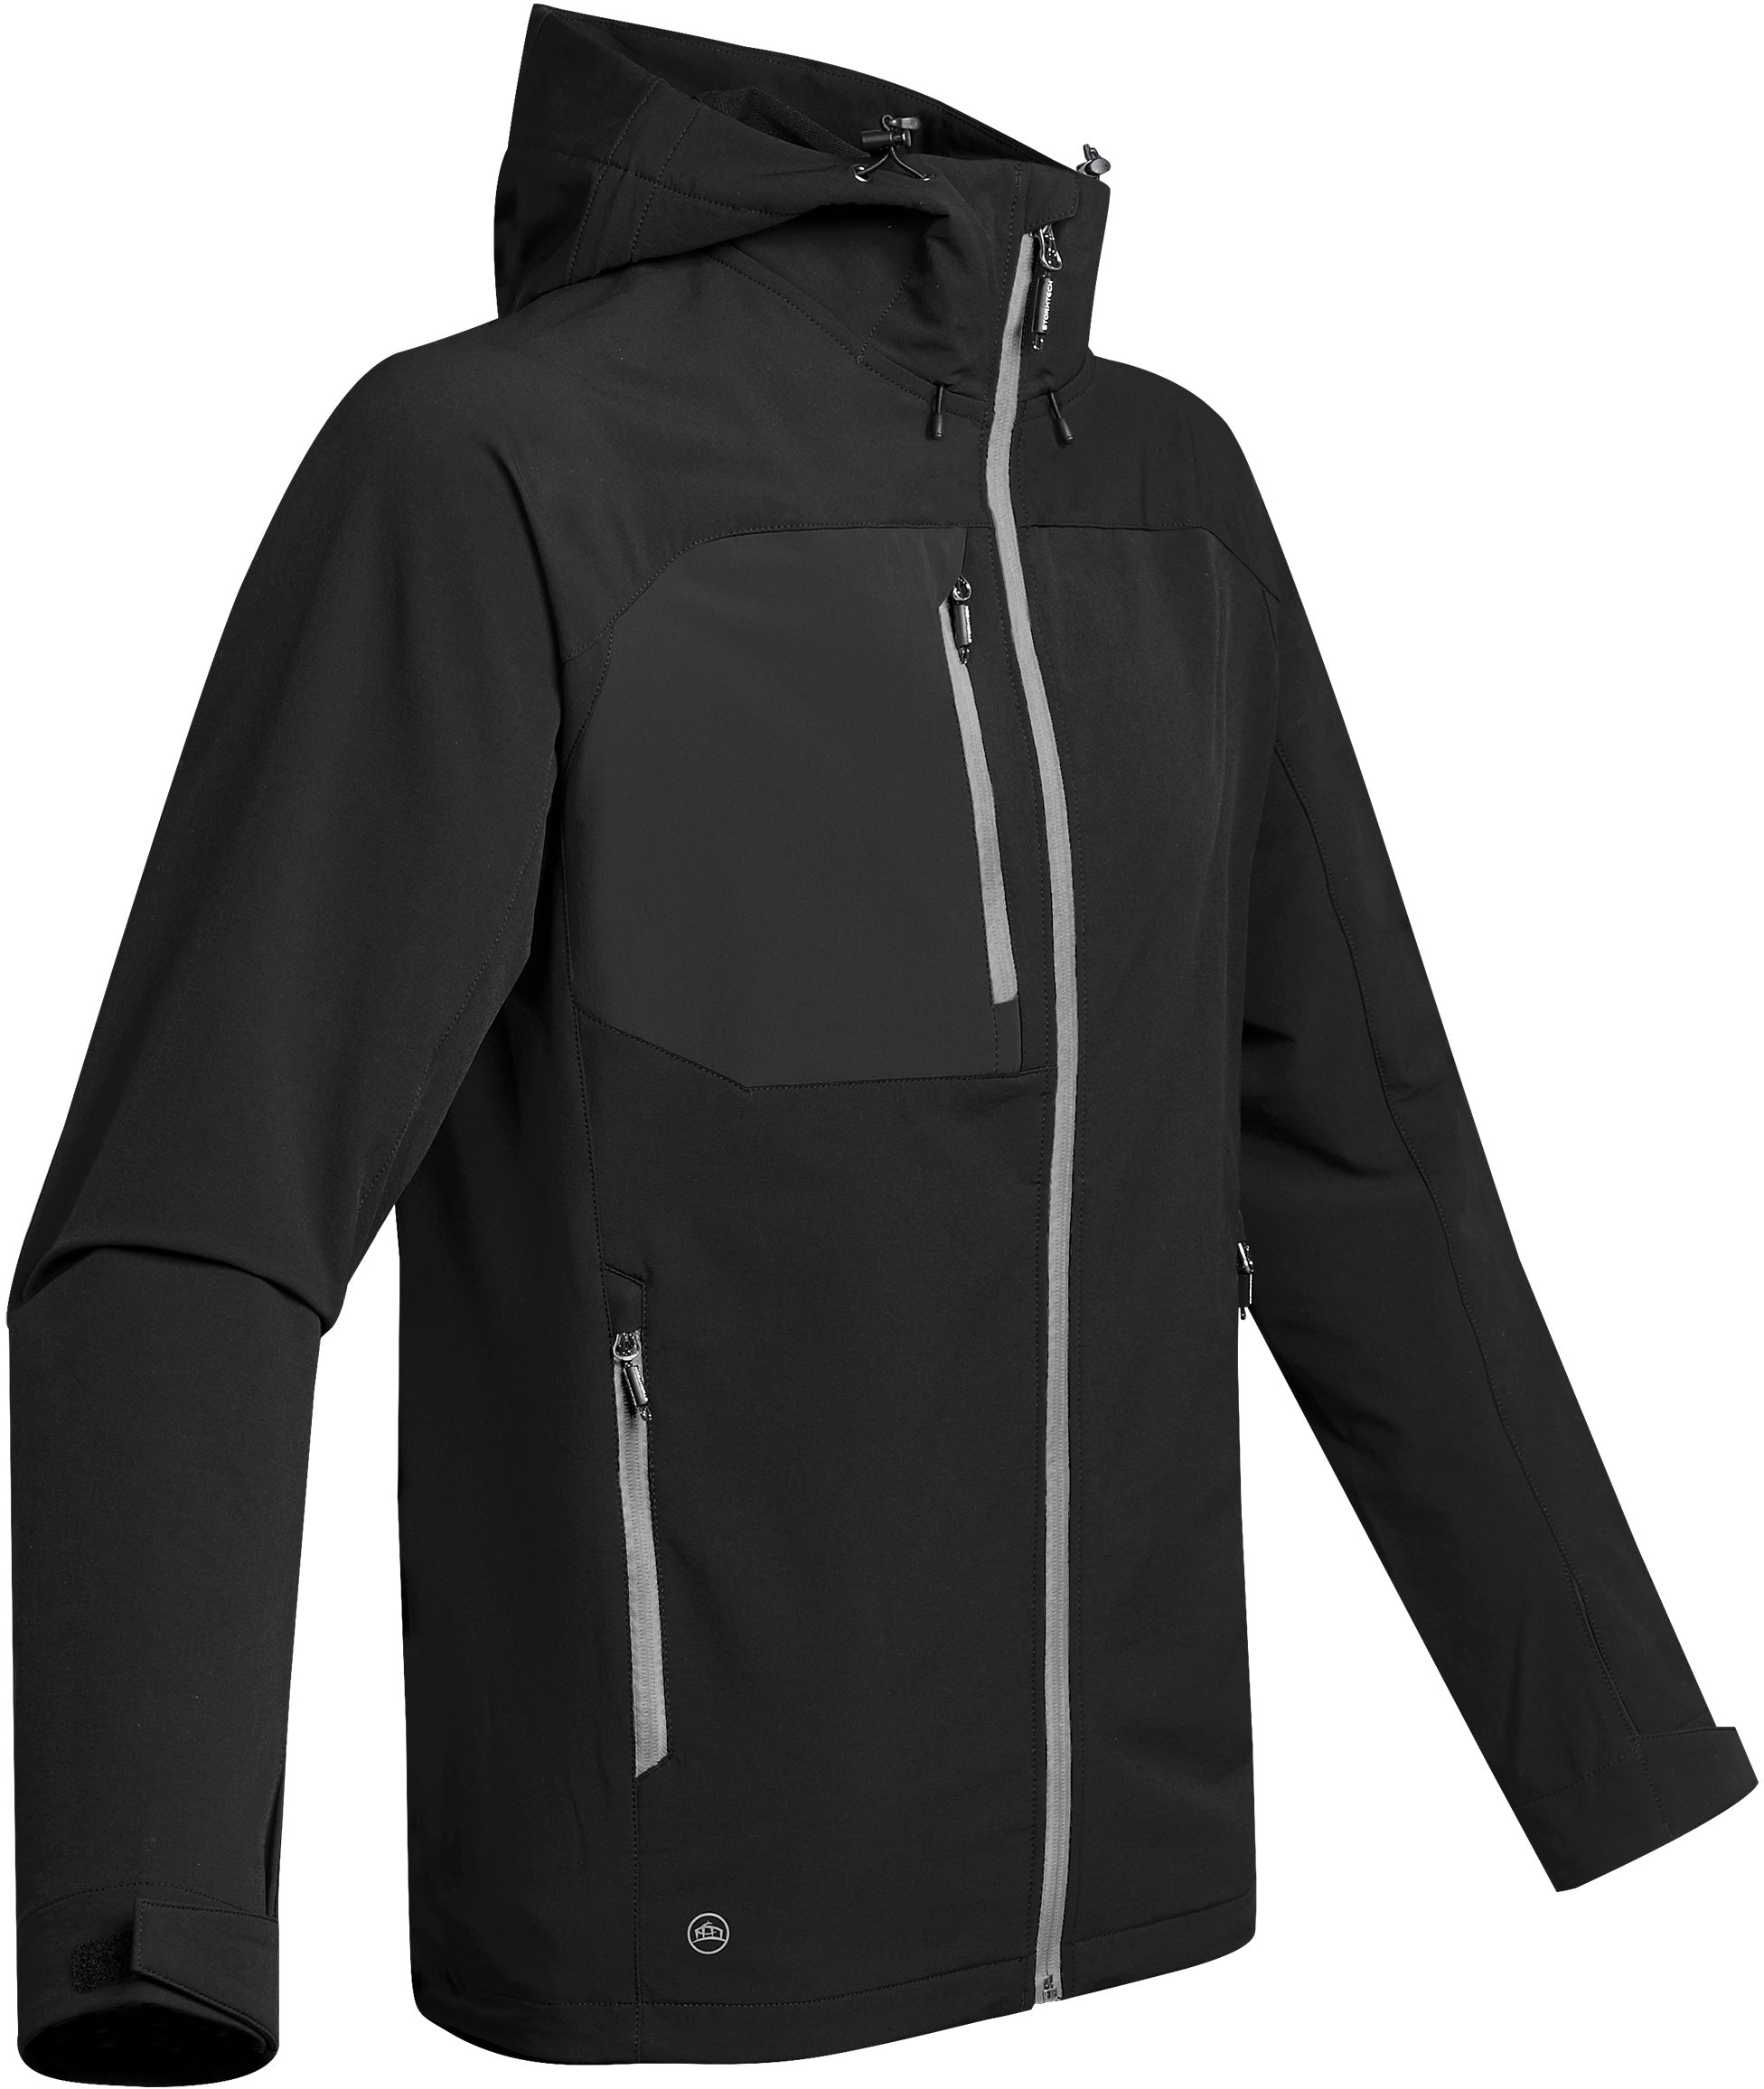 STORMTECH MEN'S SIDEWINDER SHELL JACKET